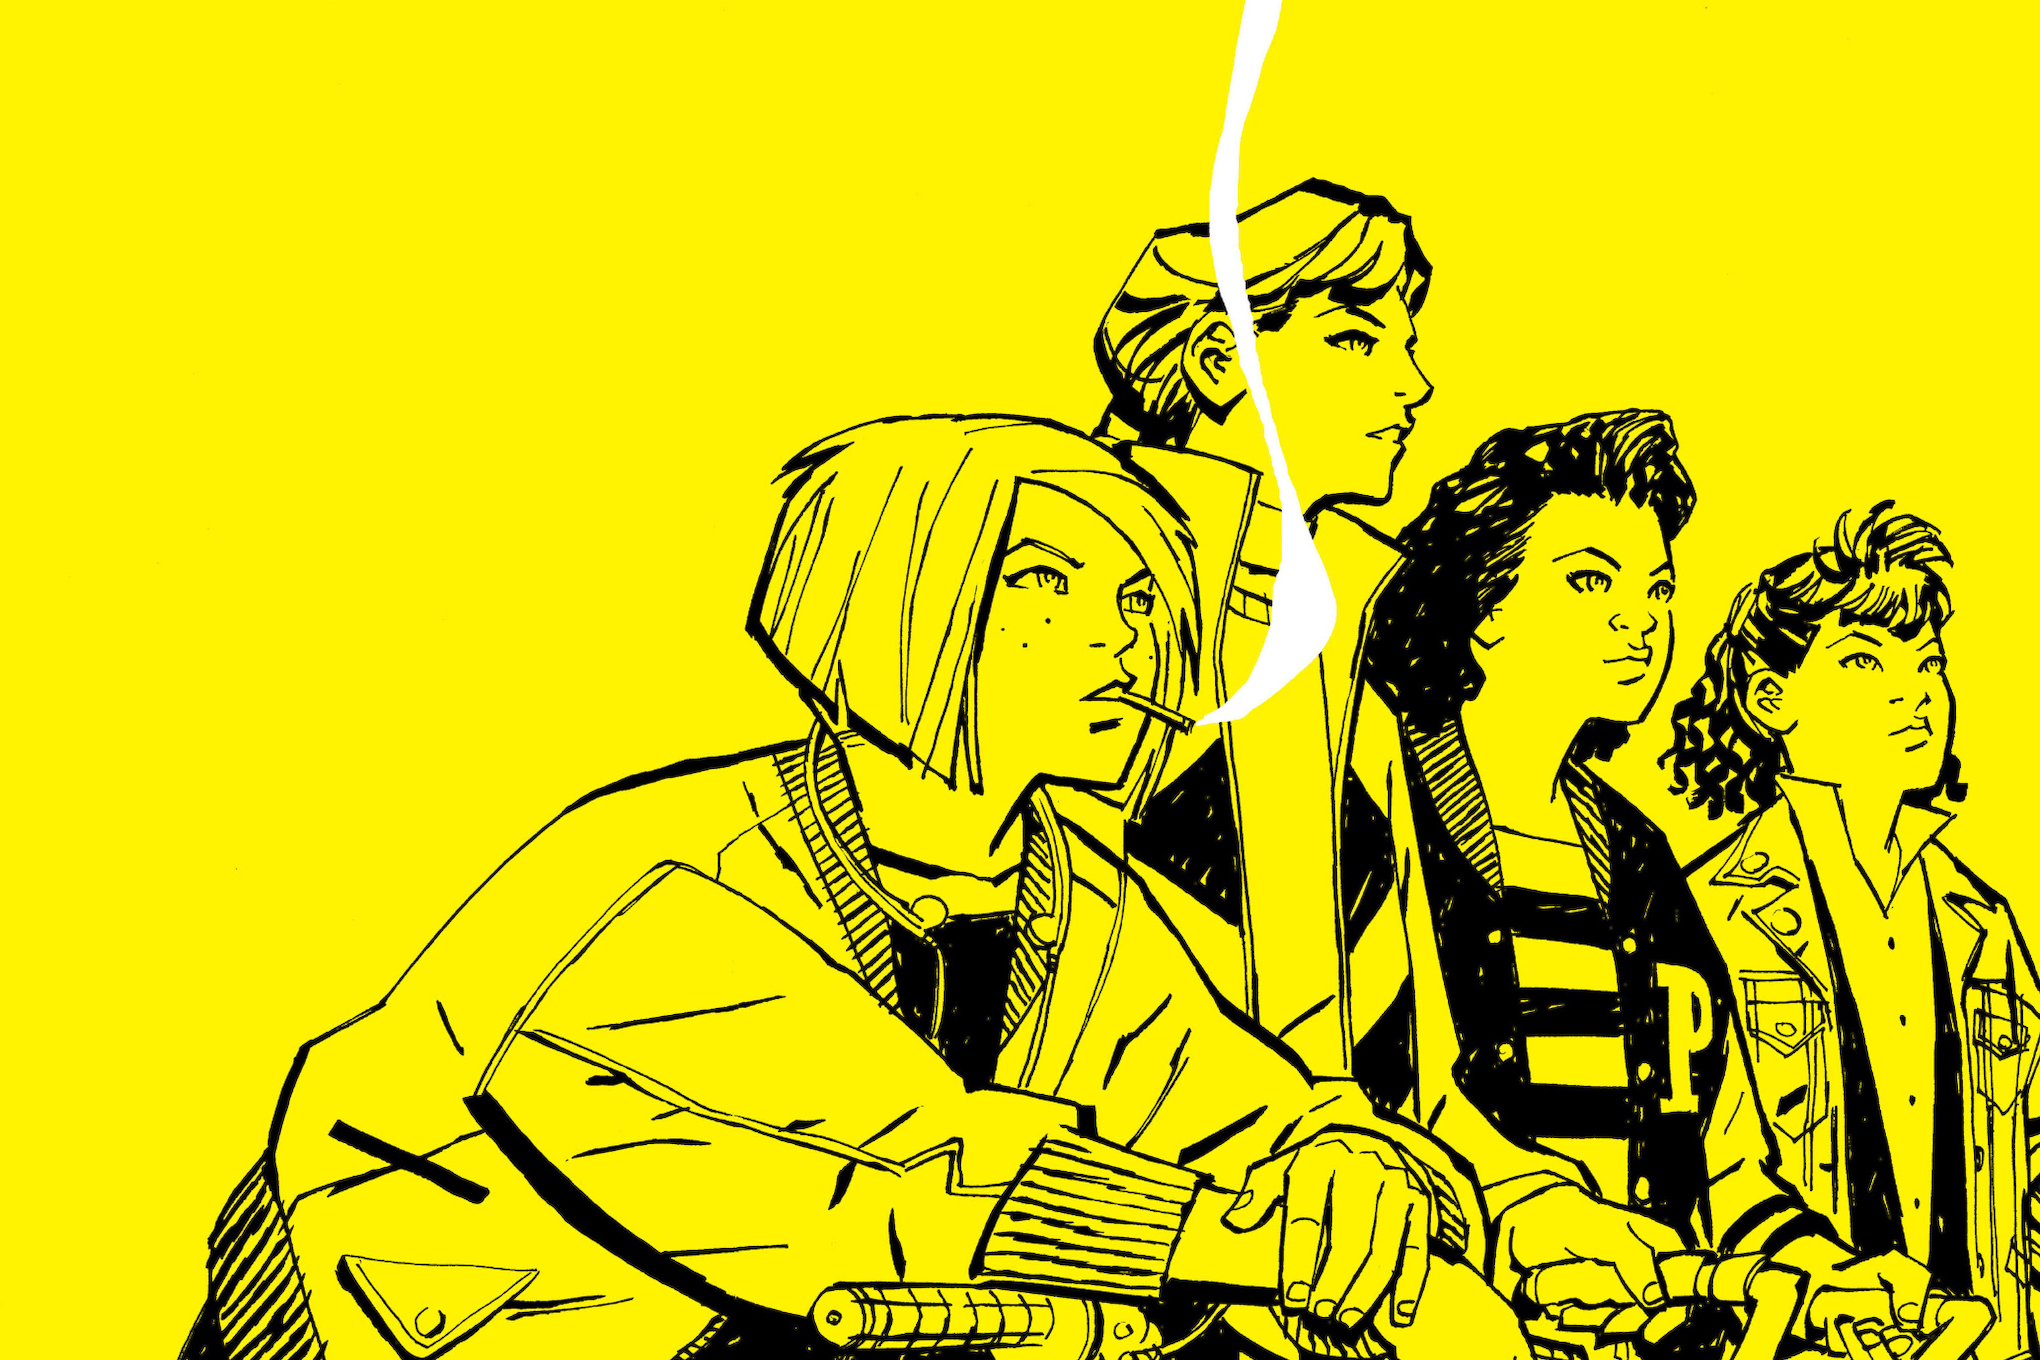 If you like Stranger Things, you should be reading Paper Girls